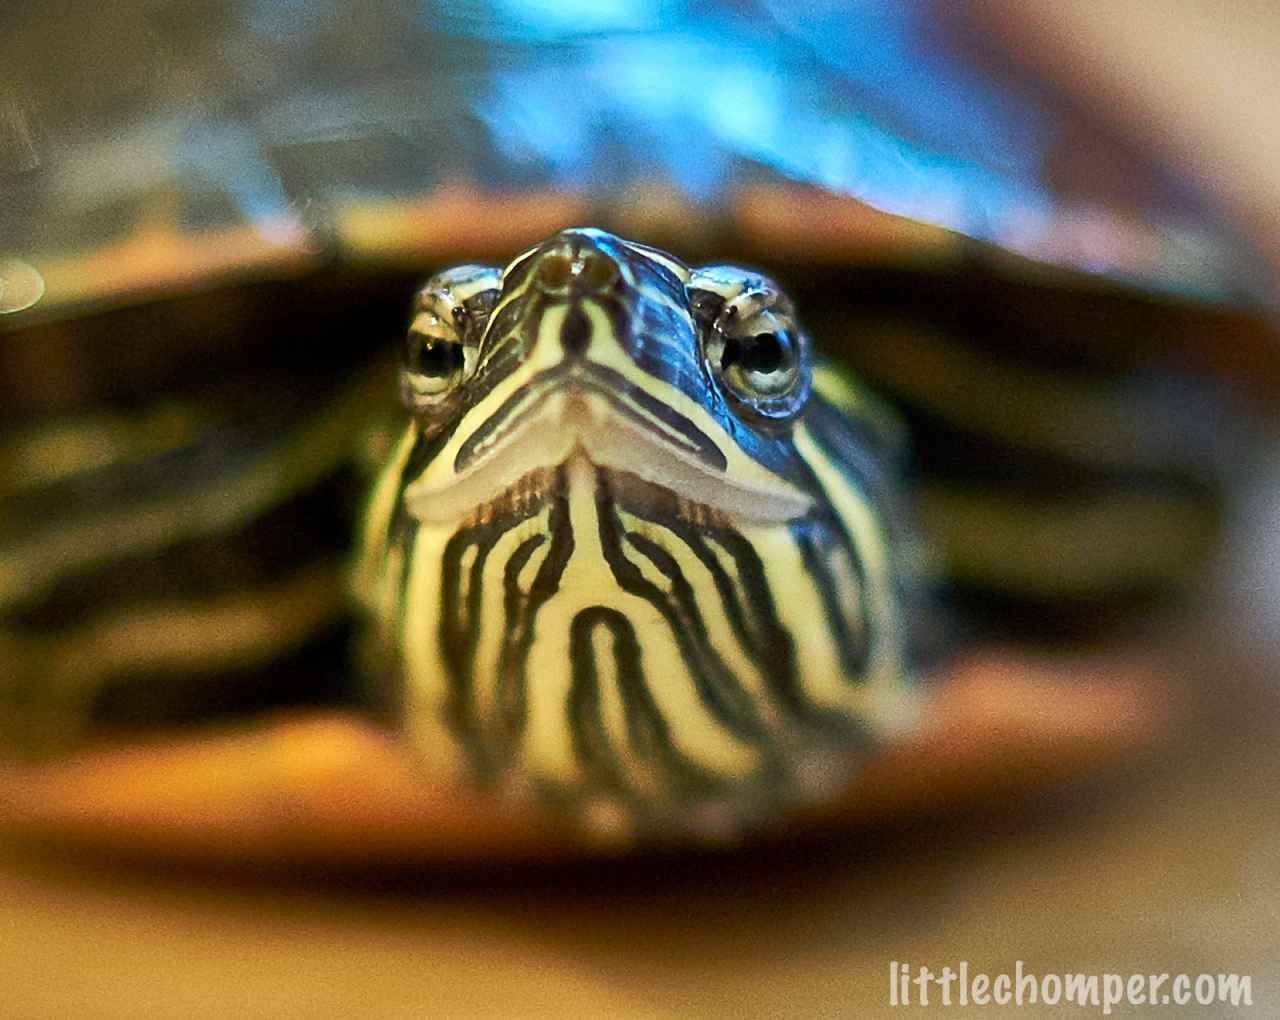 Turtle looking slightly to left with blue pills in front close up.jpg